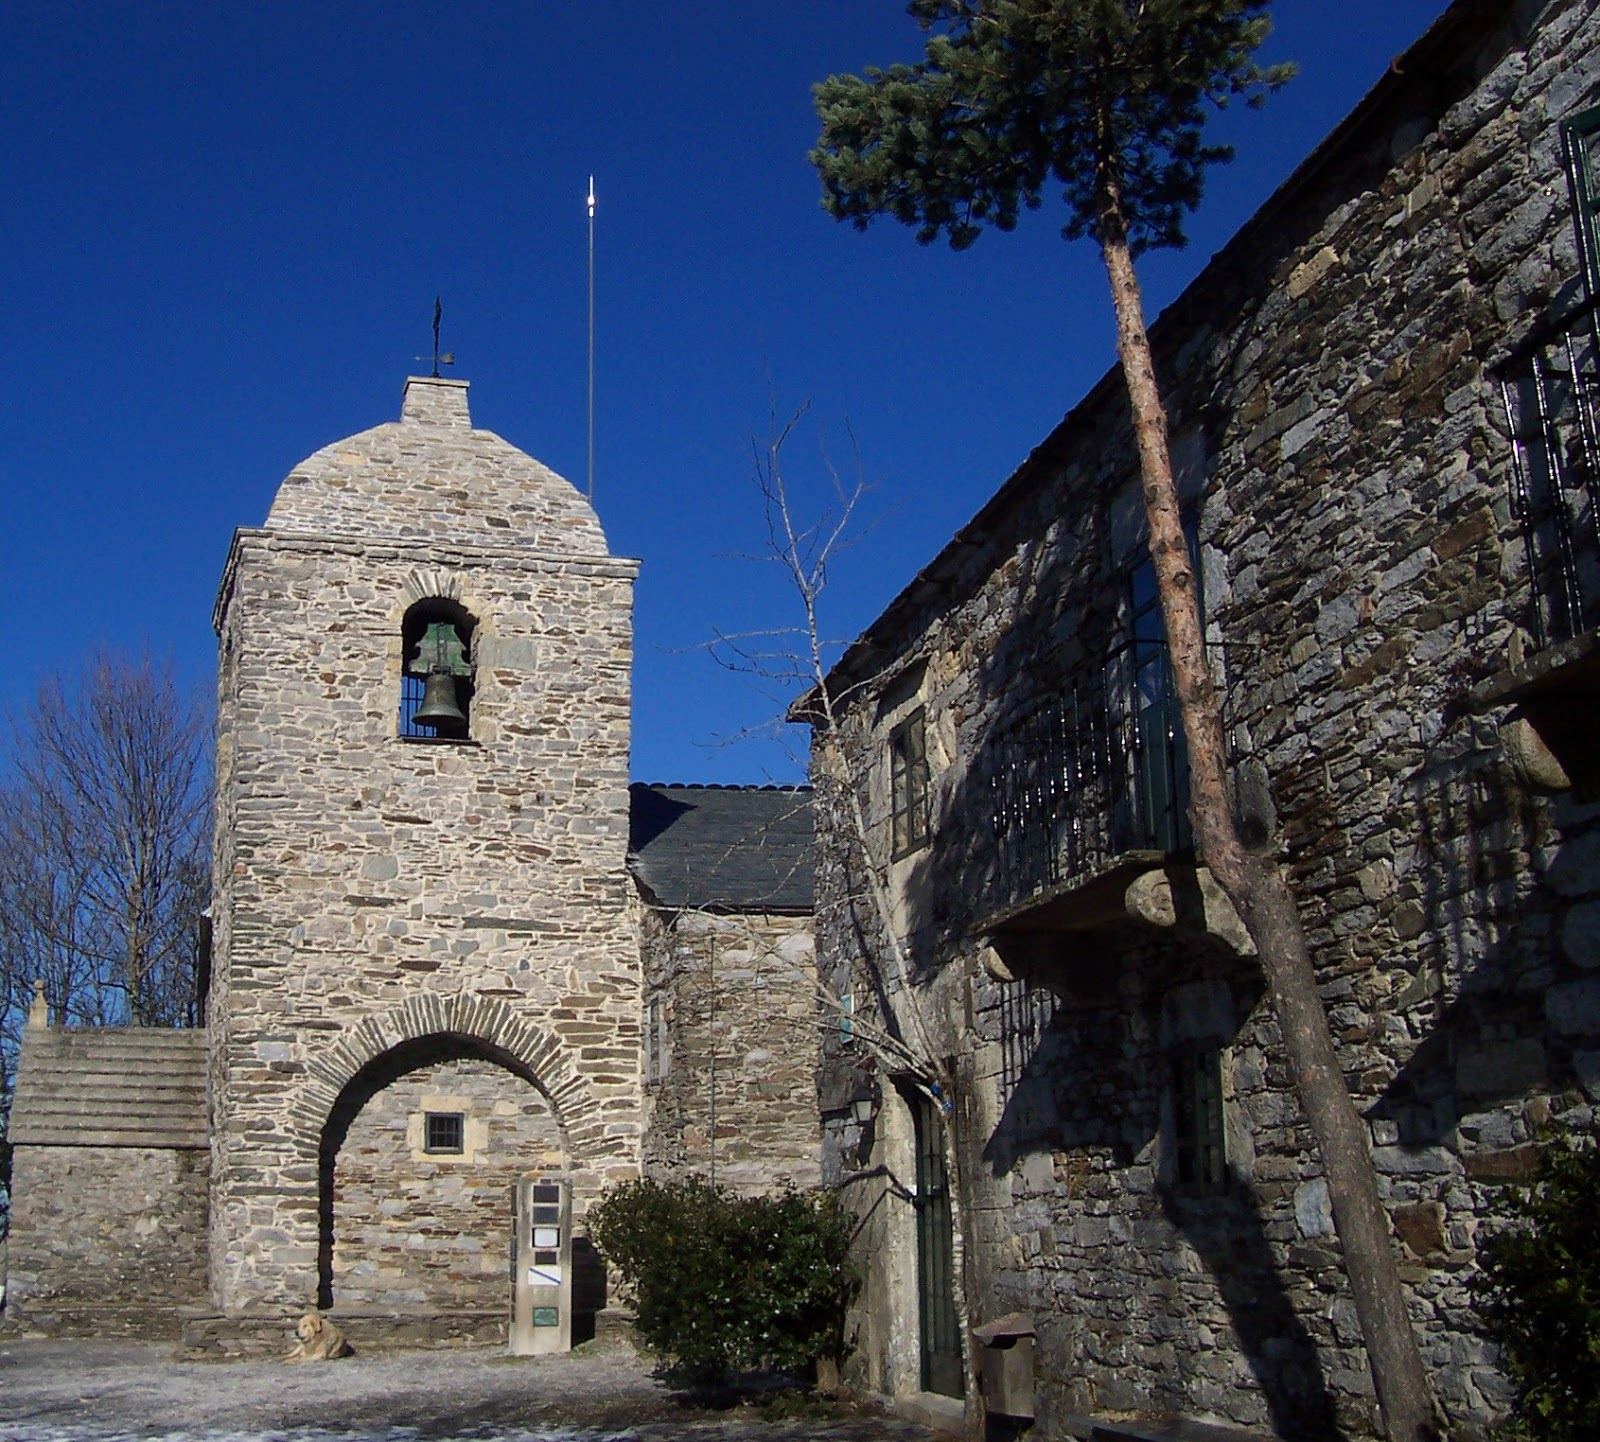 Iglesia de Santa Maria Real (Royal Saint Mary's Church) is just one of the many sites where miracles occurred along the Camino. Photo: © Amaianos (Wikimedia.org).